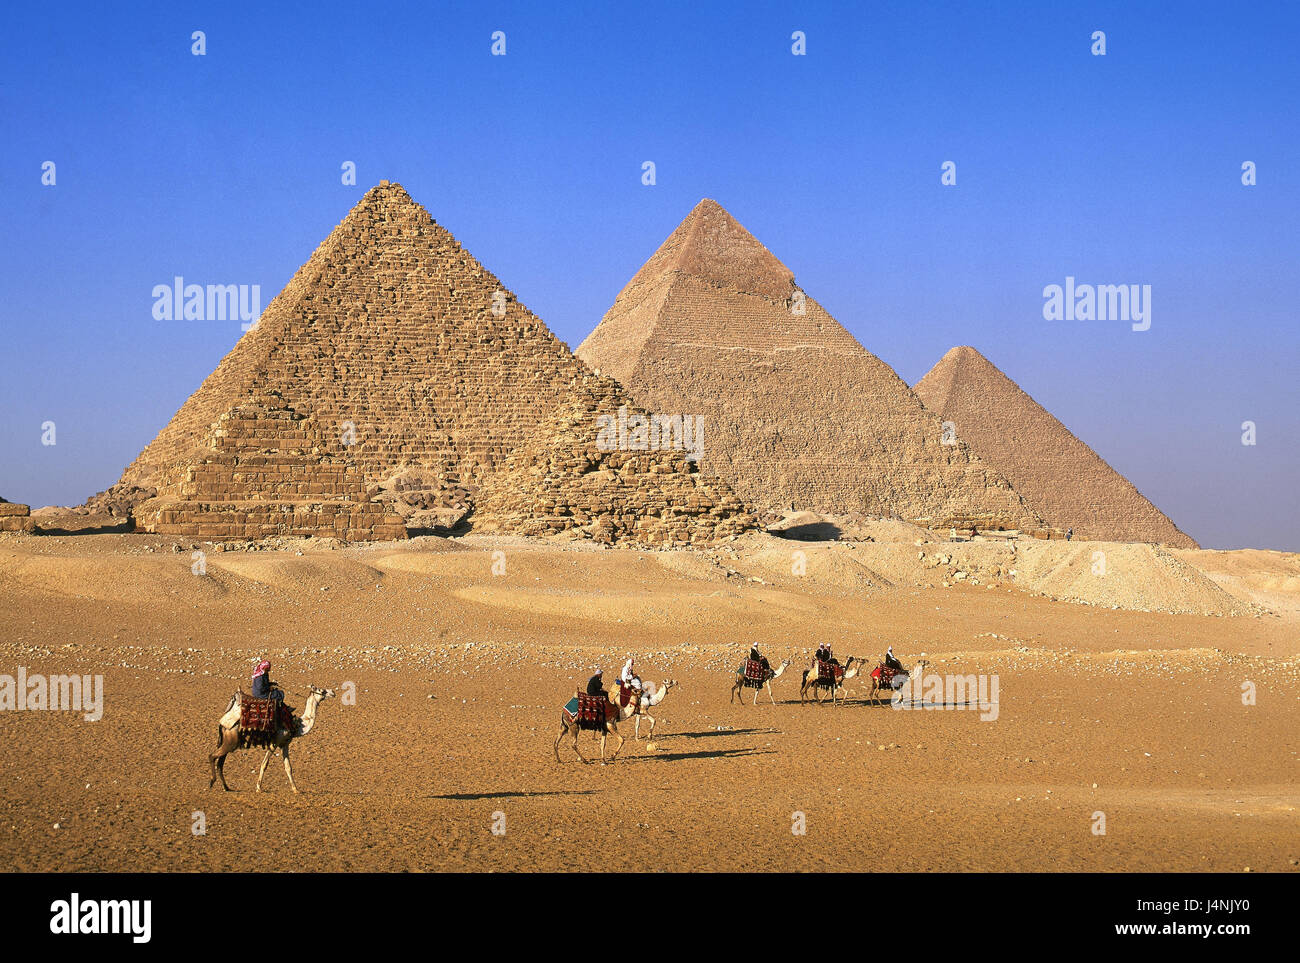 Egypt, Gizeh, pyramids, camel bleeds, Africa, structures, historically, world-famous, famously, landmarks, place - Stock Image